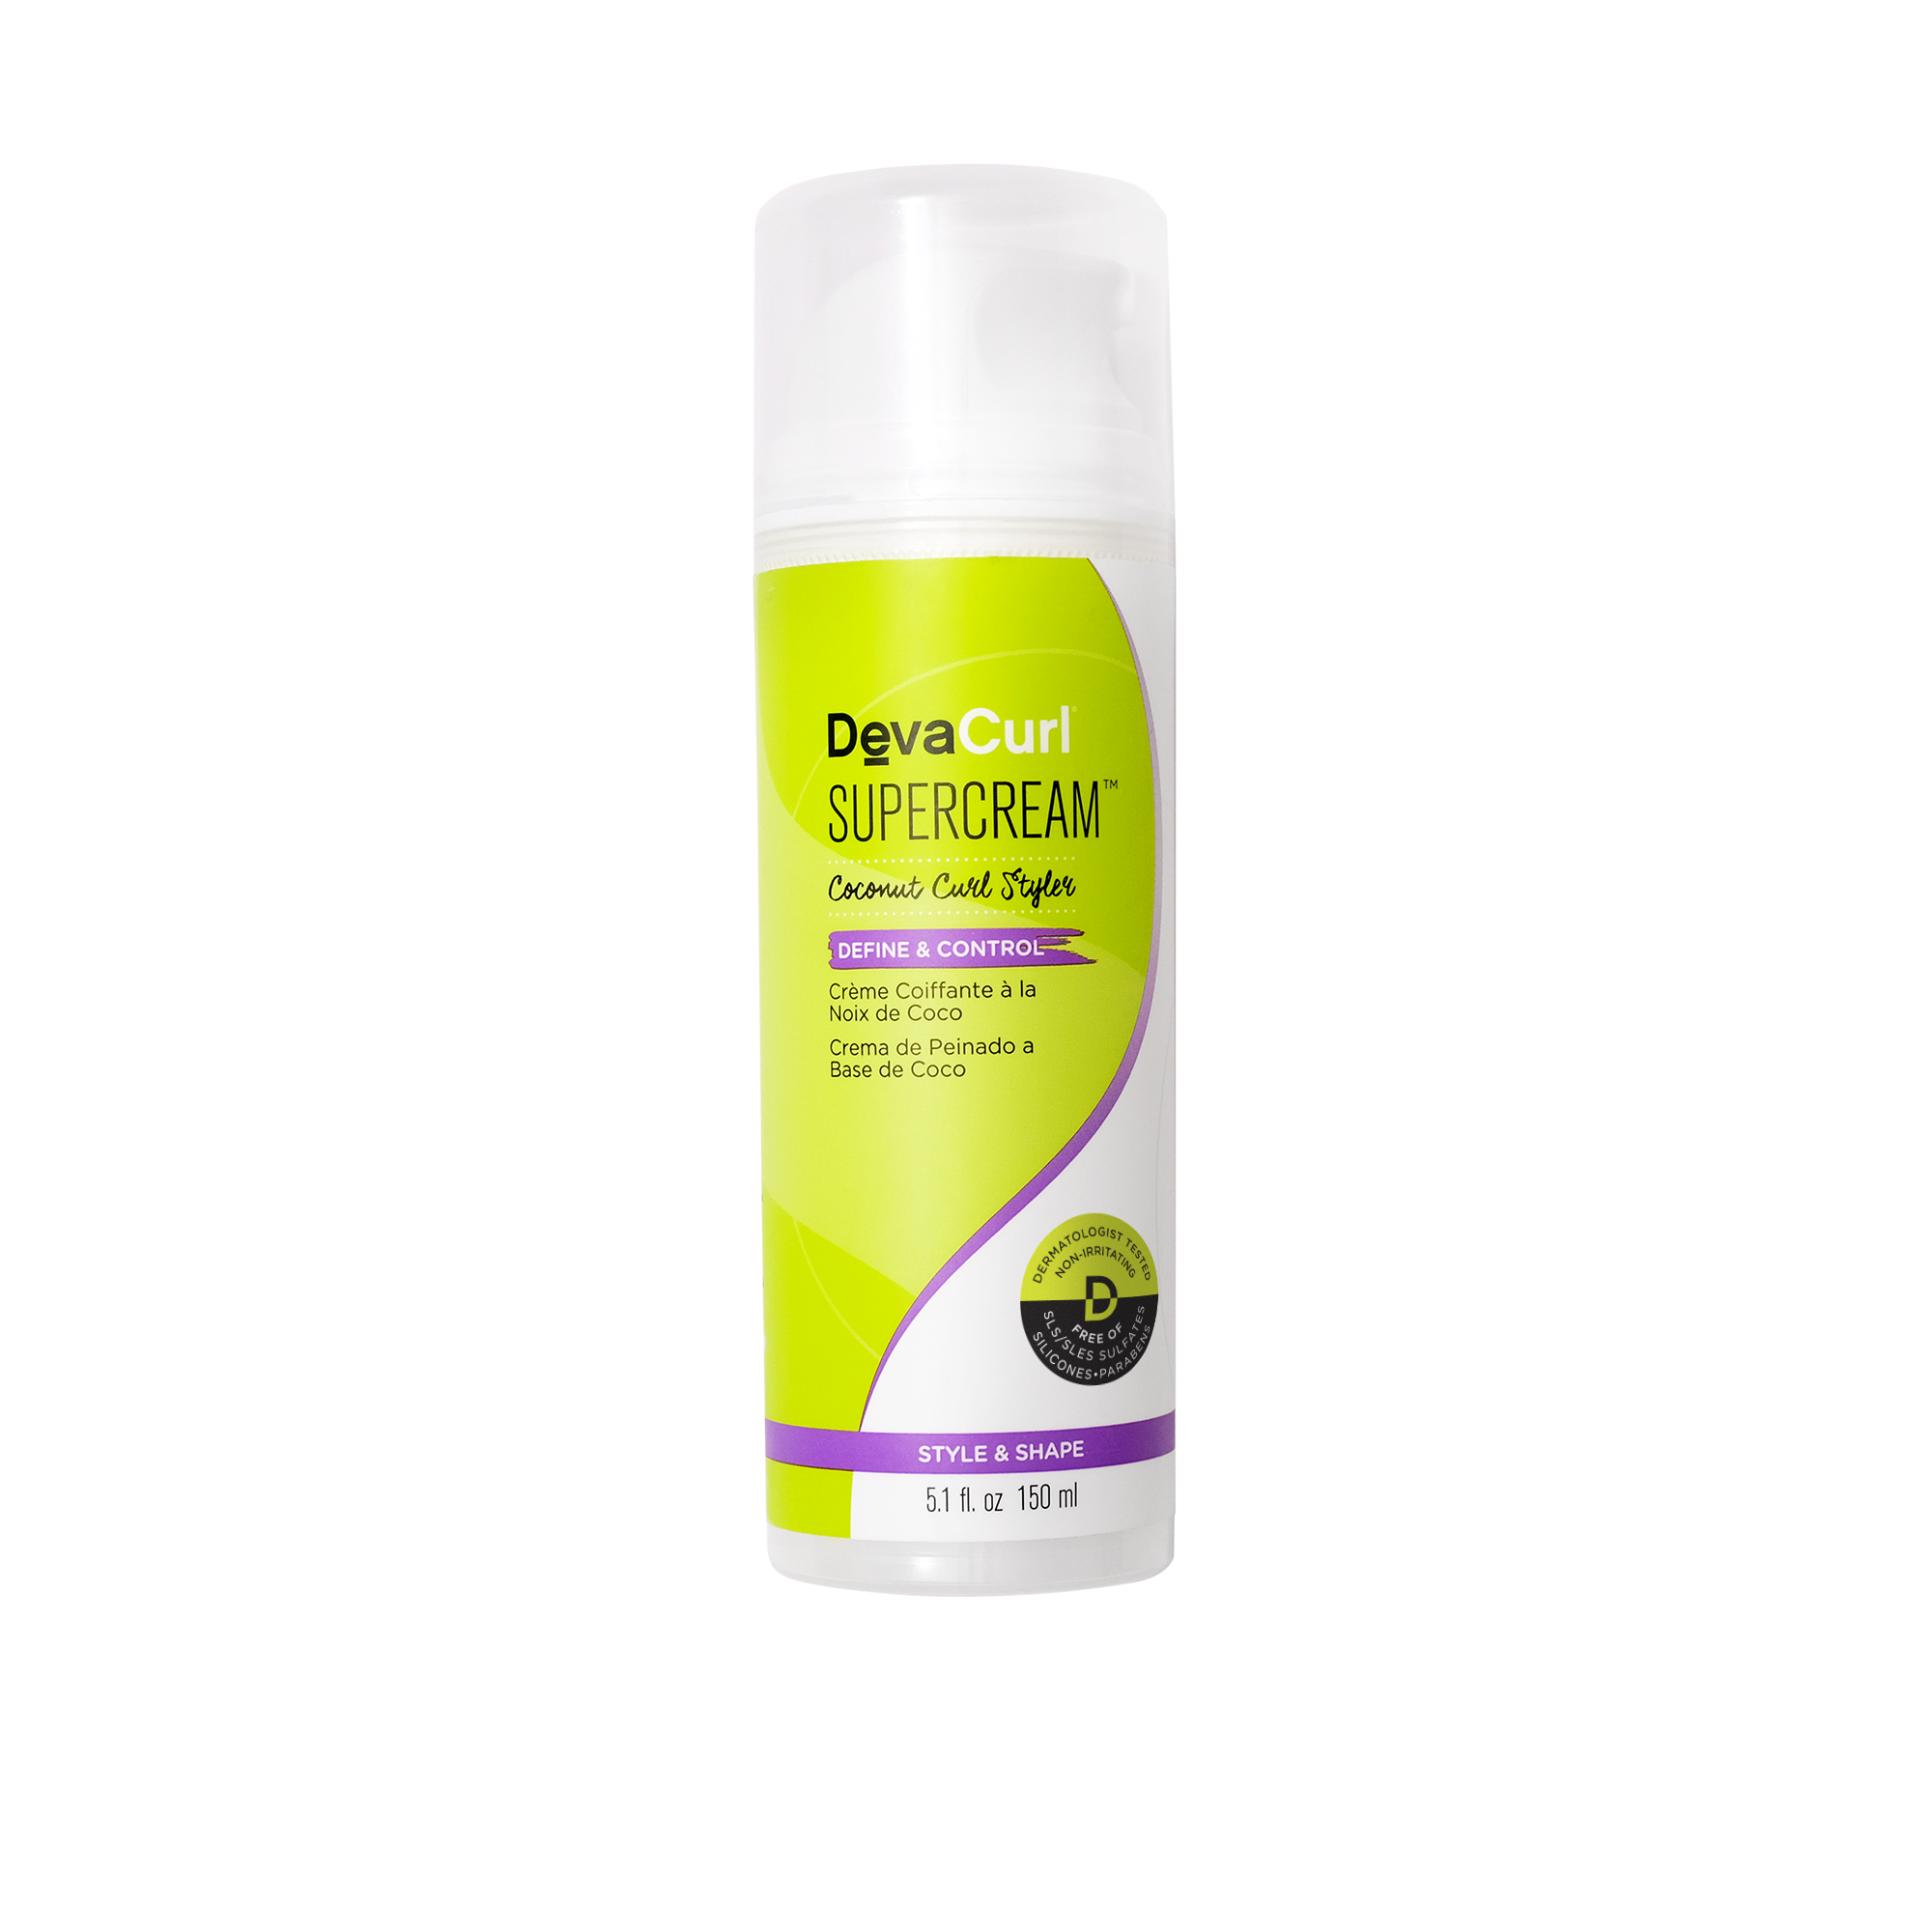 Star Products cabello